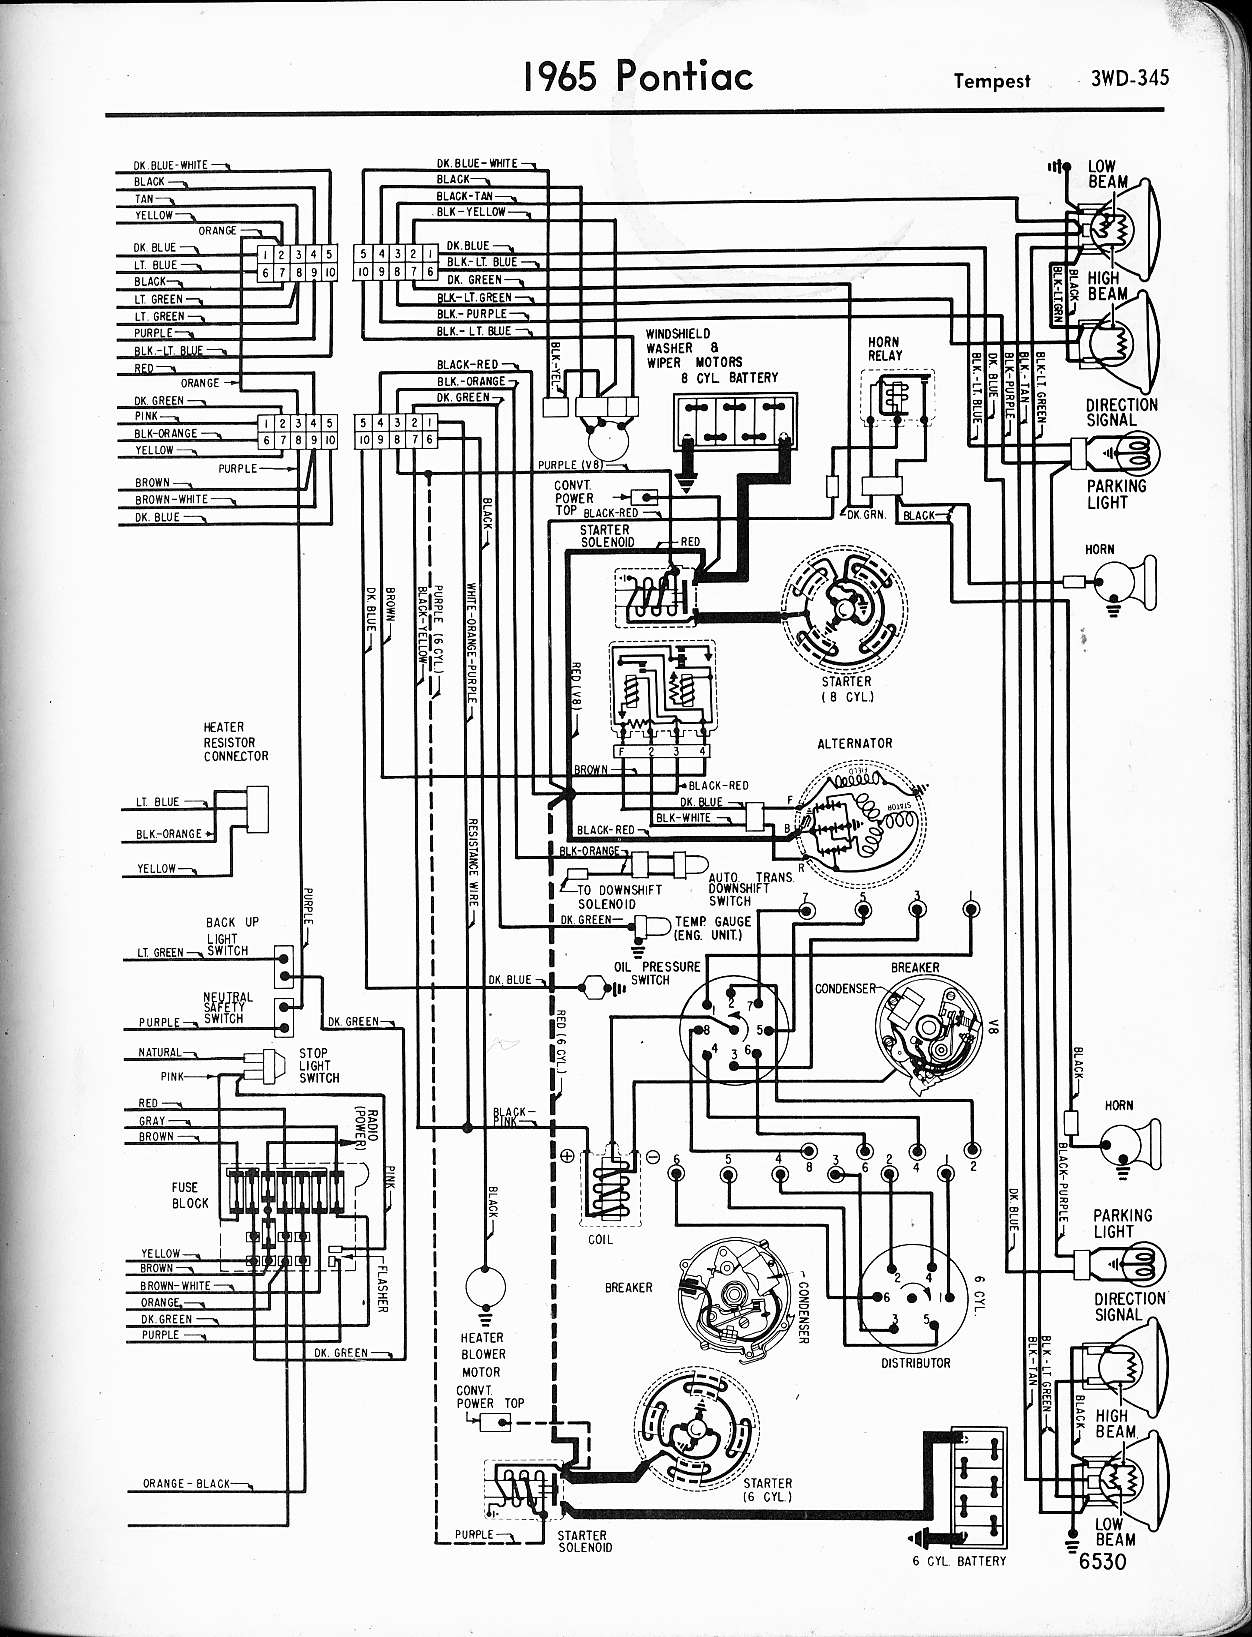 1969 Gto Wiring Diagram Schemes 68 Camaro Pdf Wallace Racing Diagrams Rh Wallaceracing Com Ignition Switch Dash